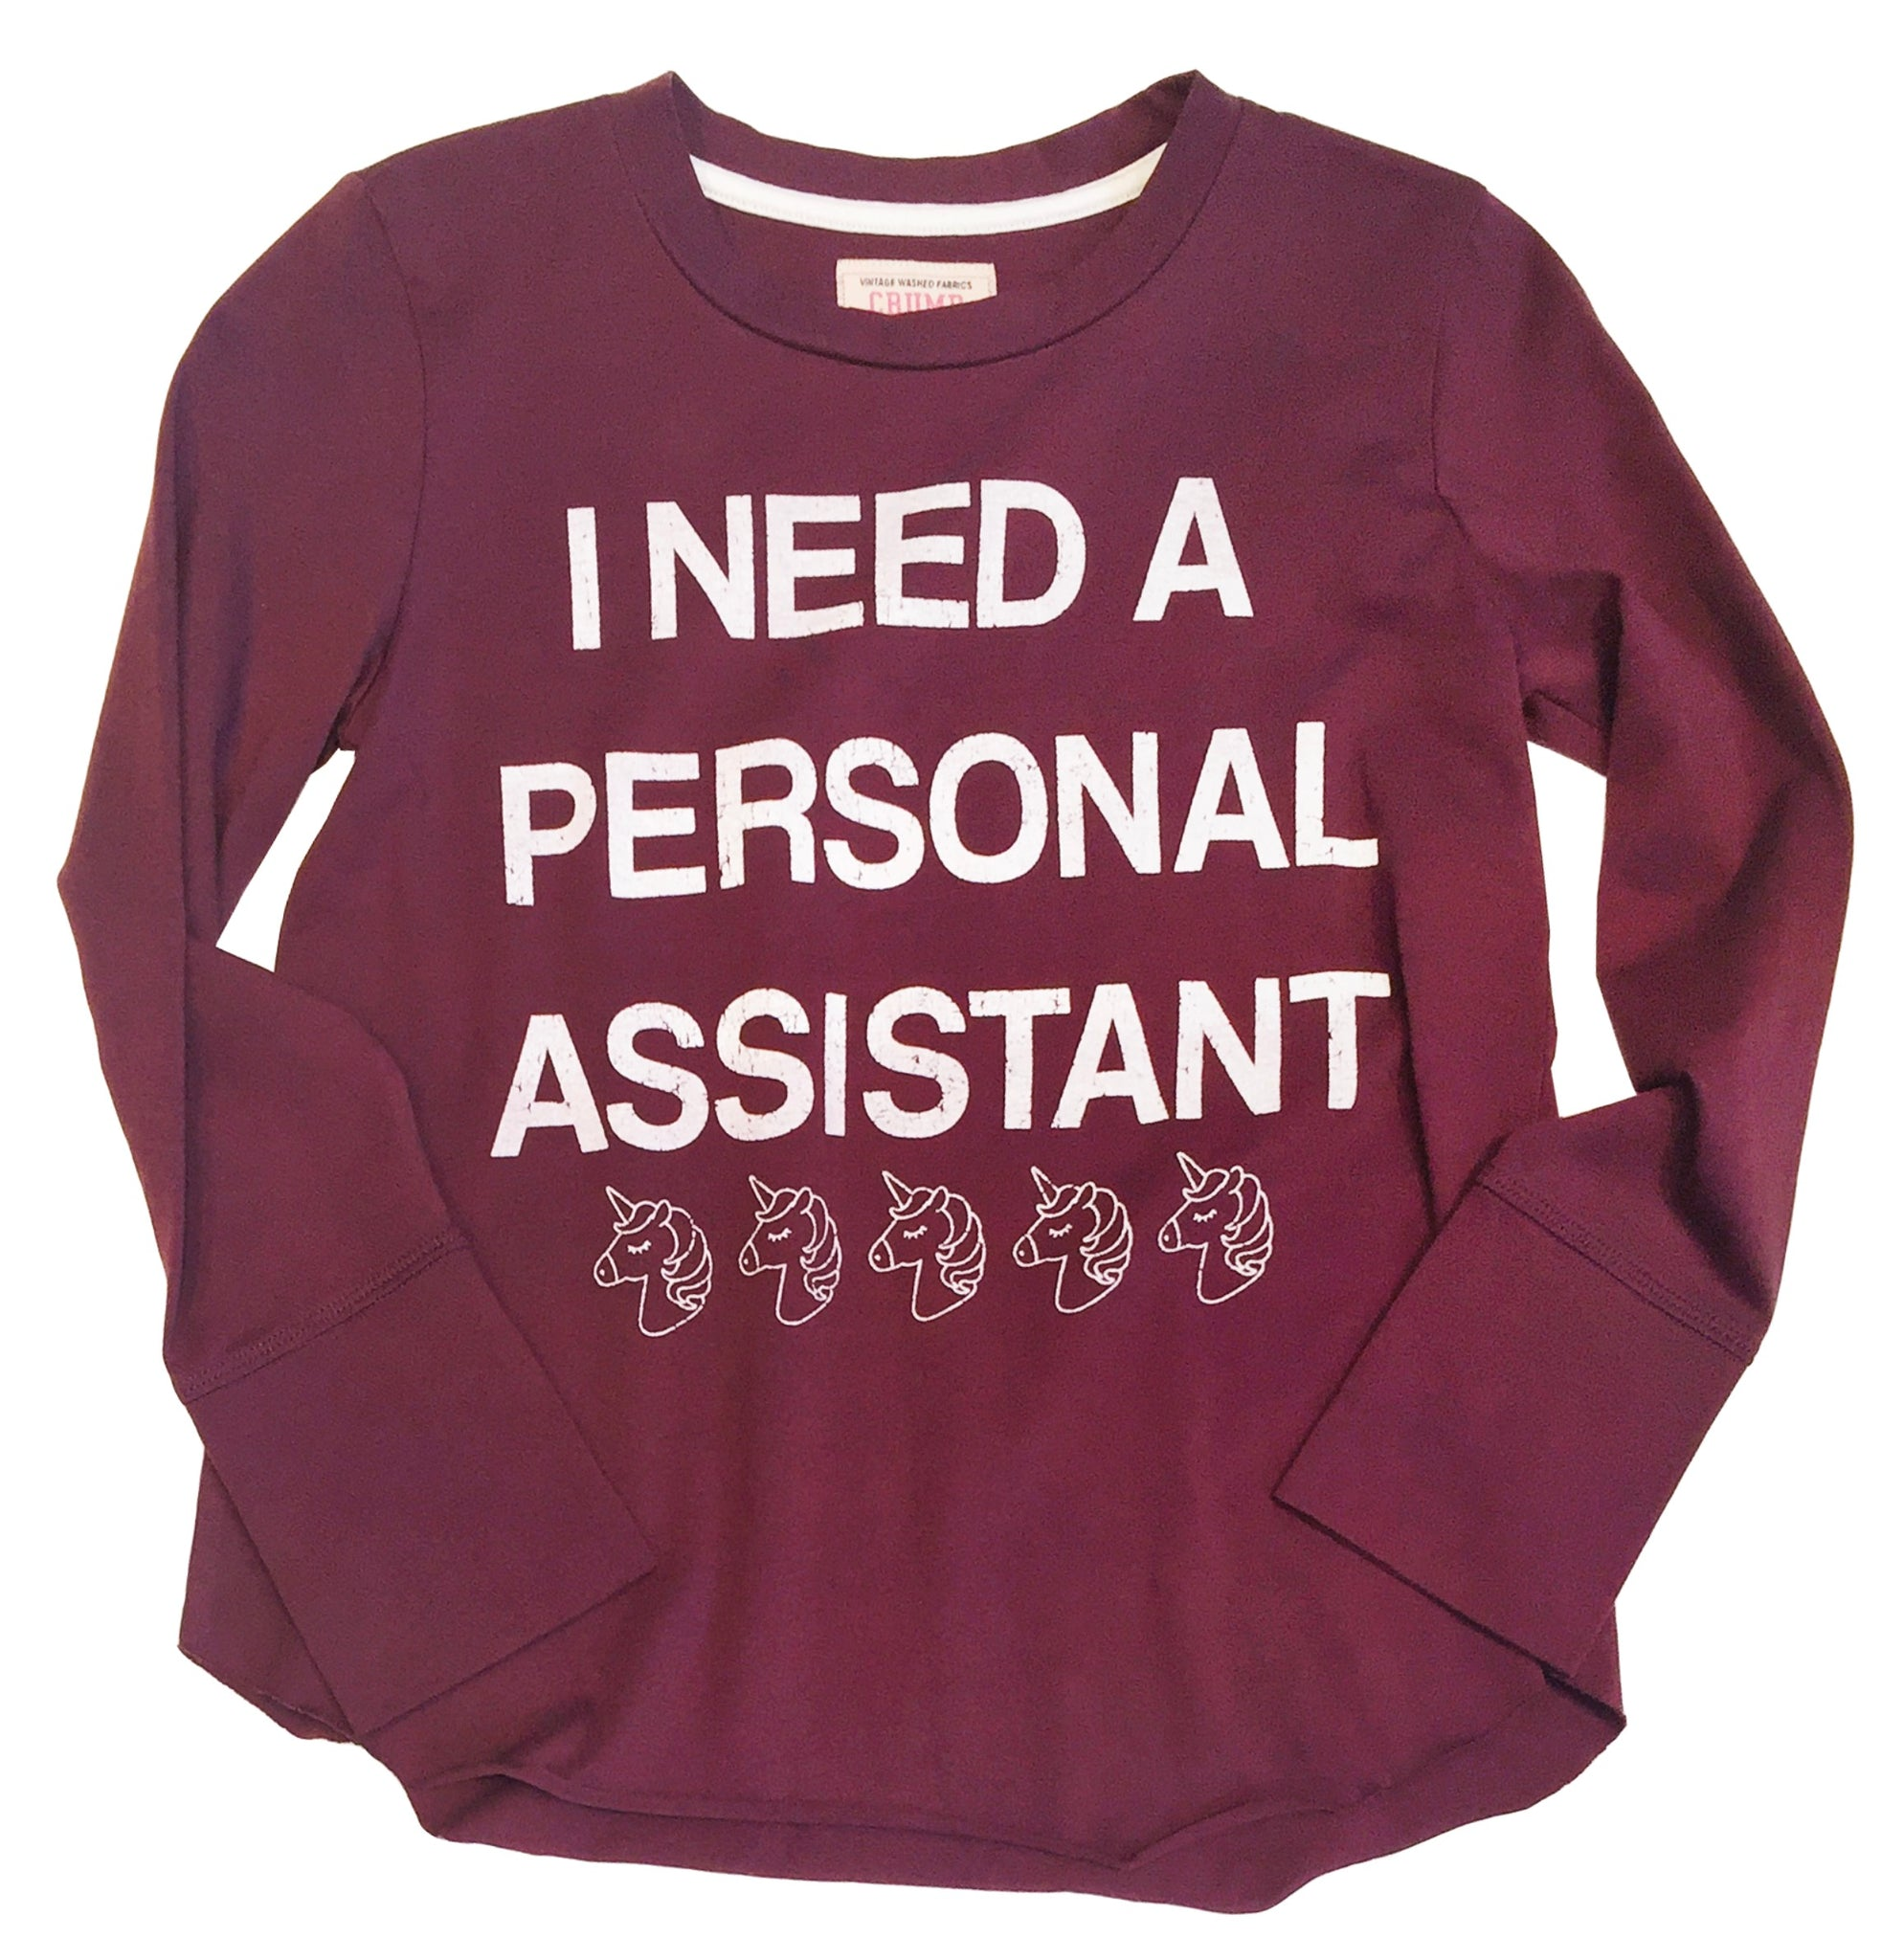 I NEED A PERSONAL ASSISTANT LONG SLEEVE